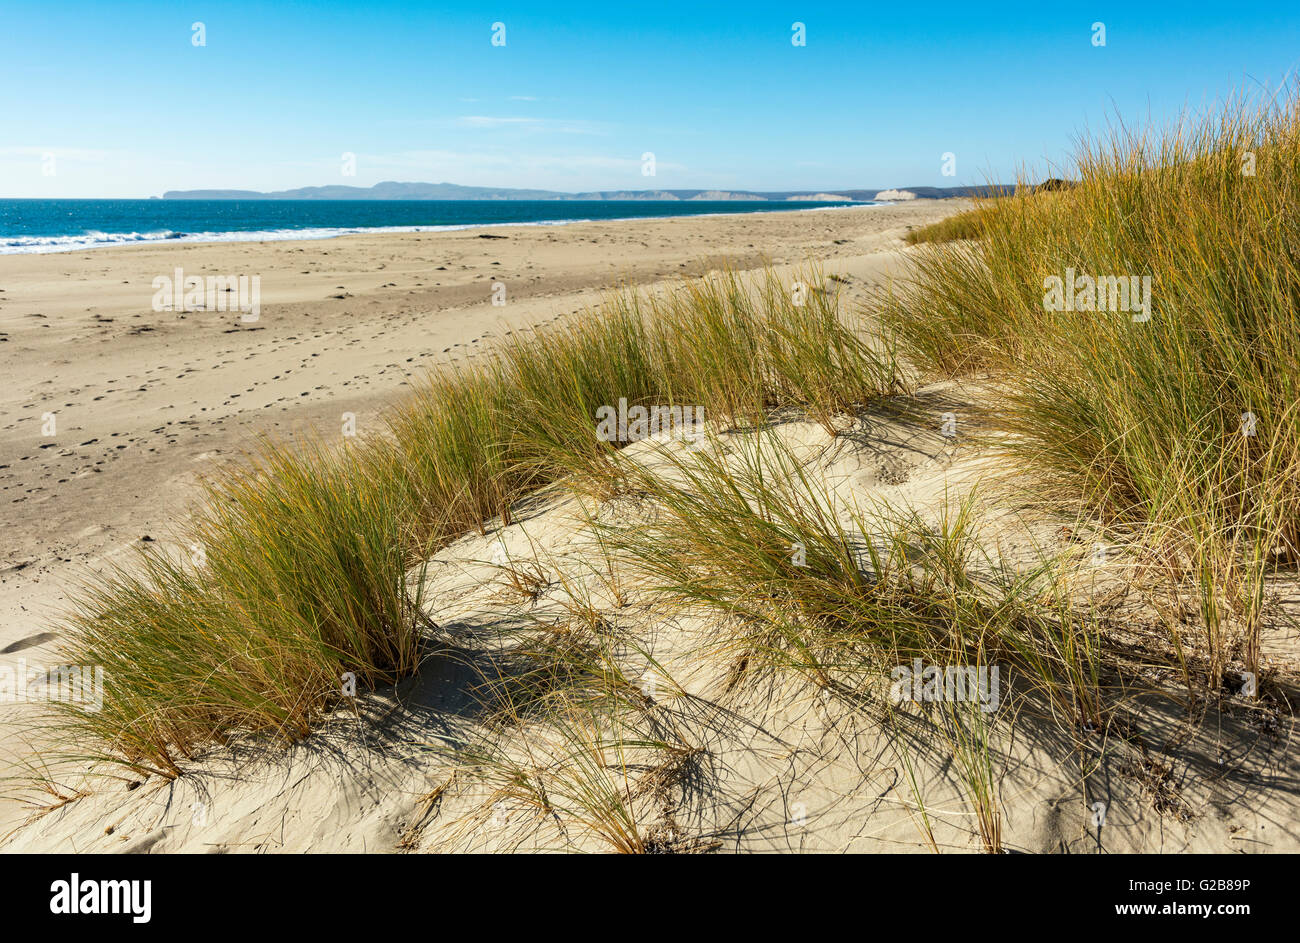 California, Point Reyes National Seashore, Limantour Beach, sand dunes, beach grass - Stock Image